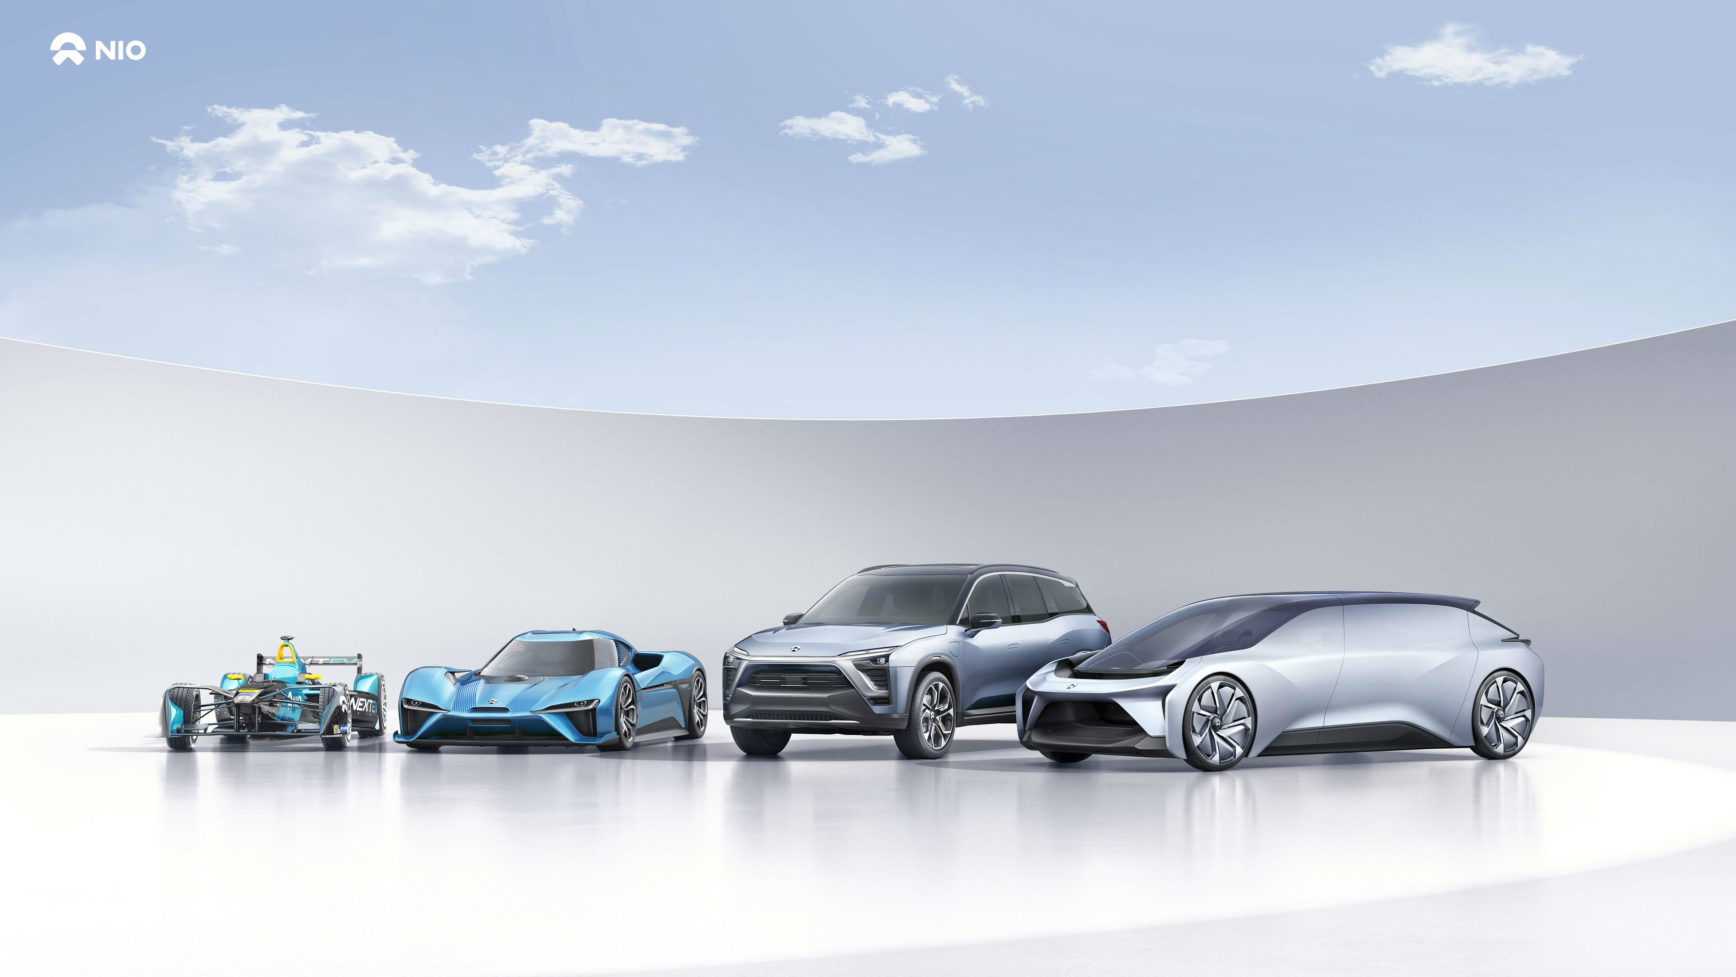 NIO - automotive business - 2018 - cover